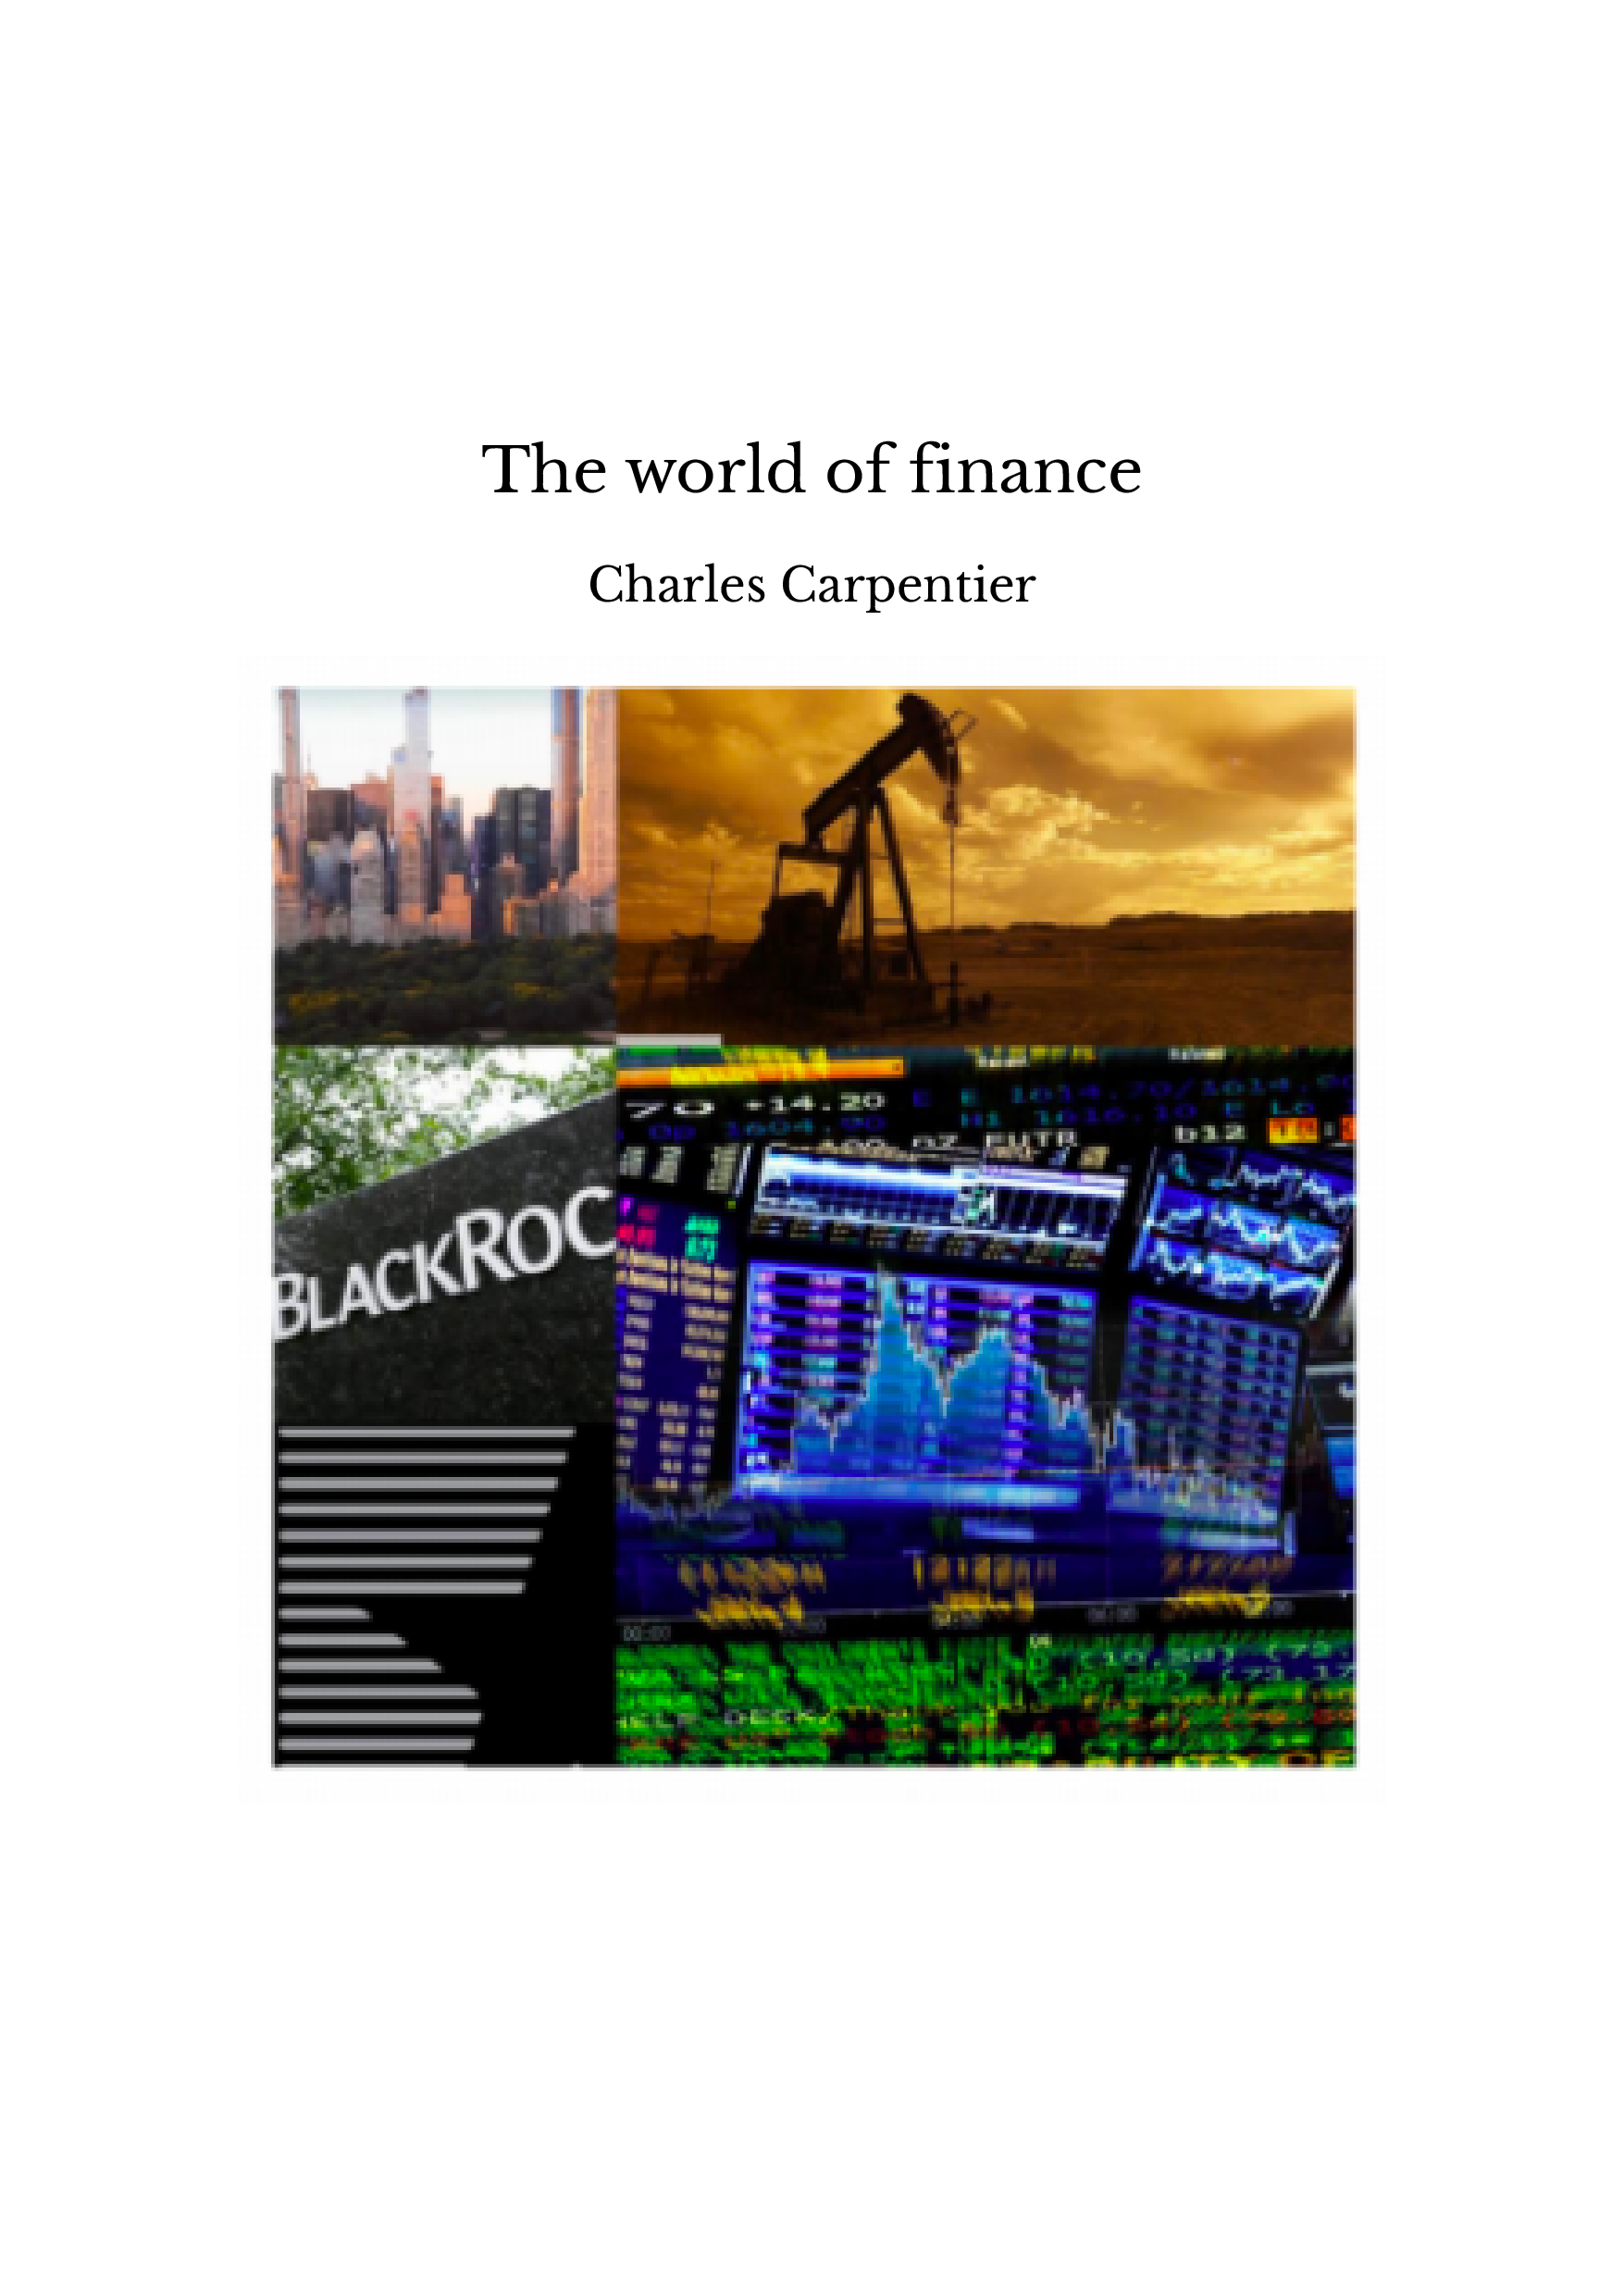 The world of finance